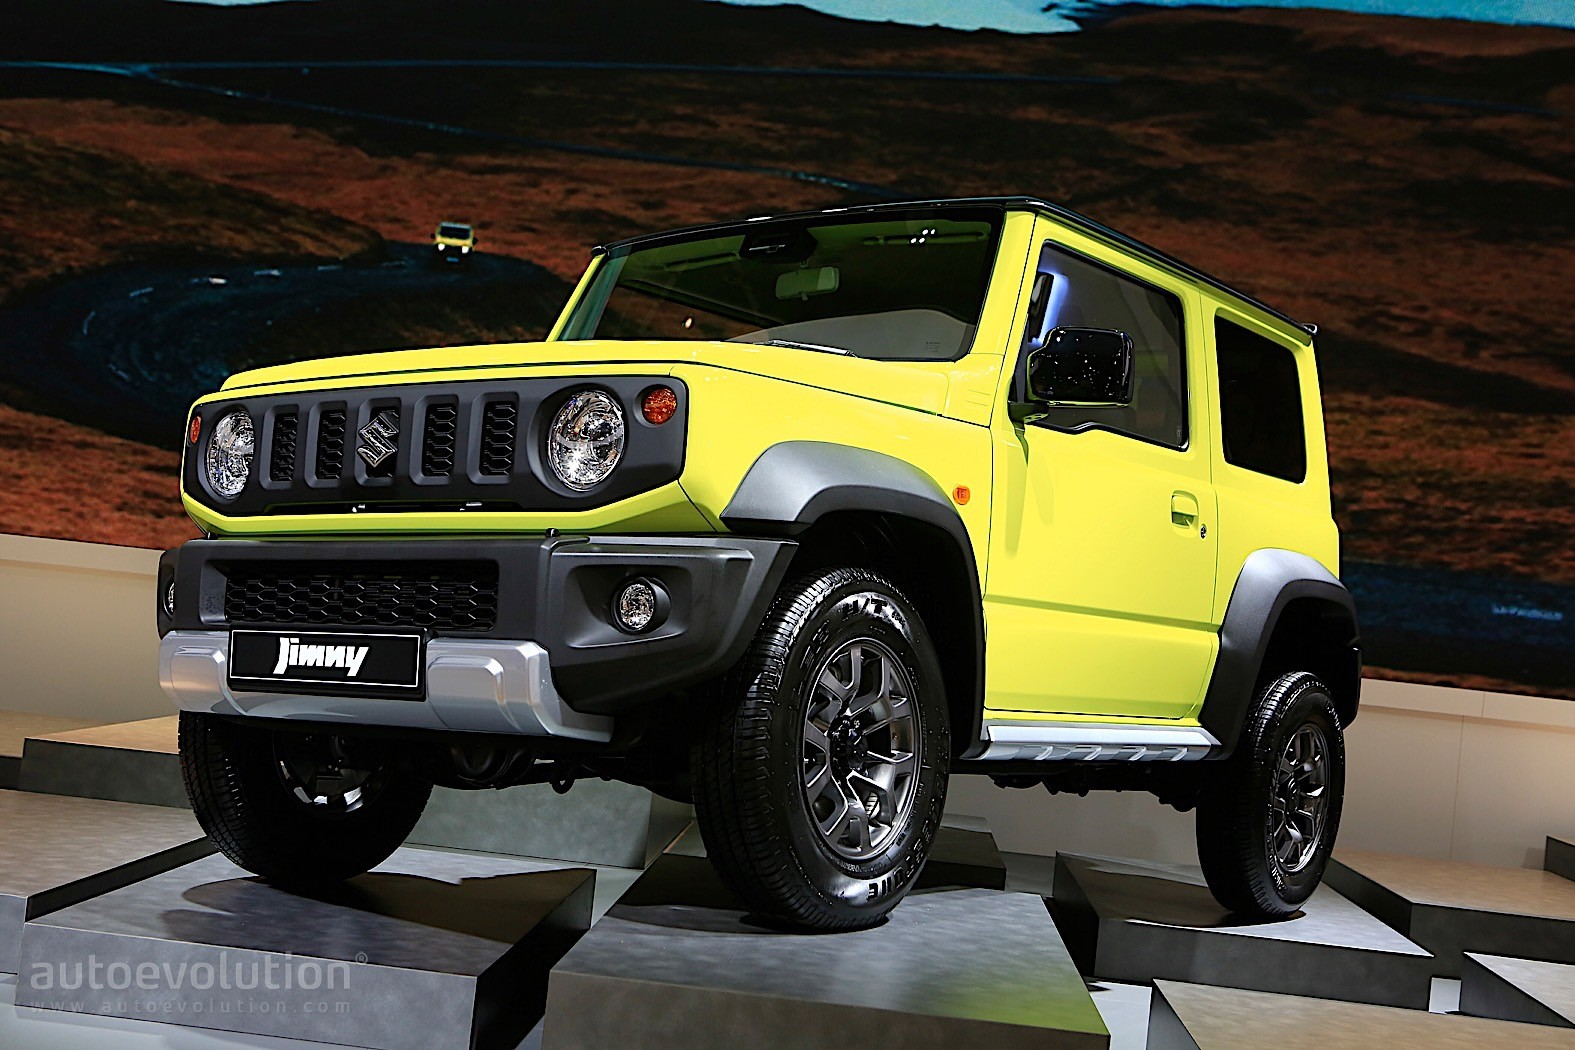 2019 suzuki jimny is out for suv blood in paris autoevolution. Black Bedroom Furniture Sets. Home Design Ideas